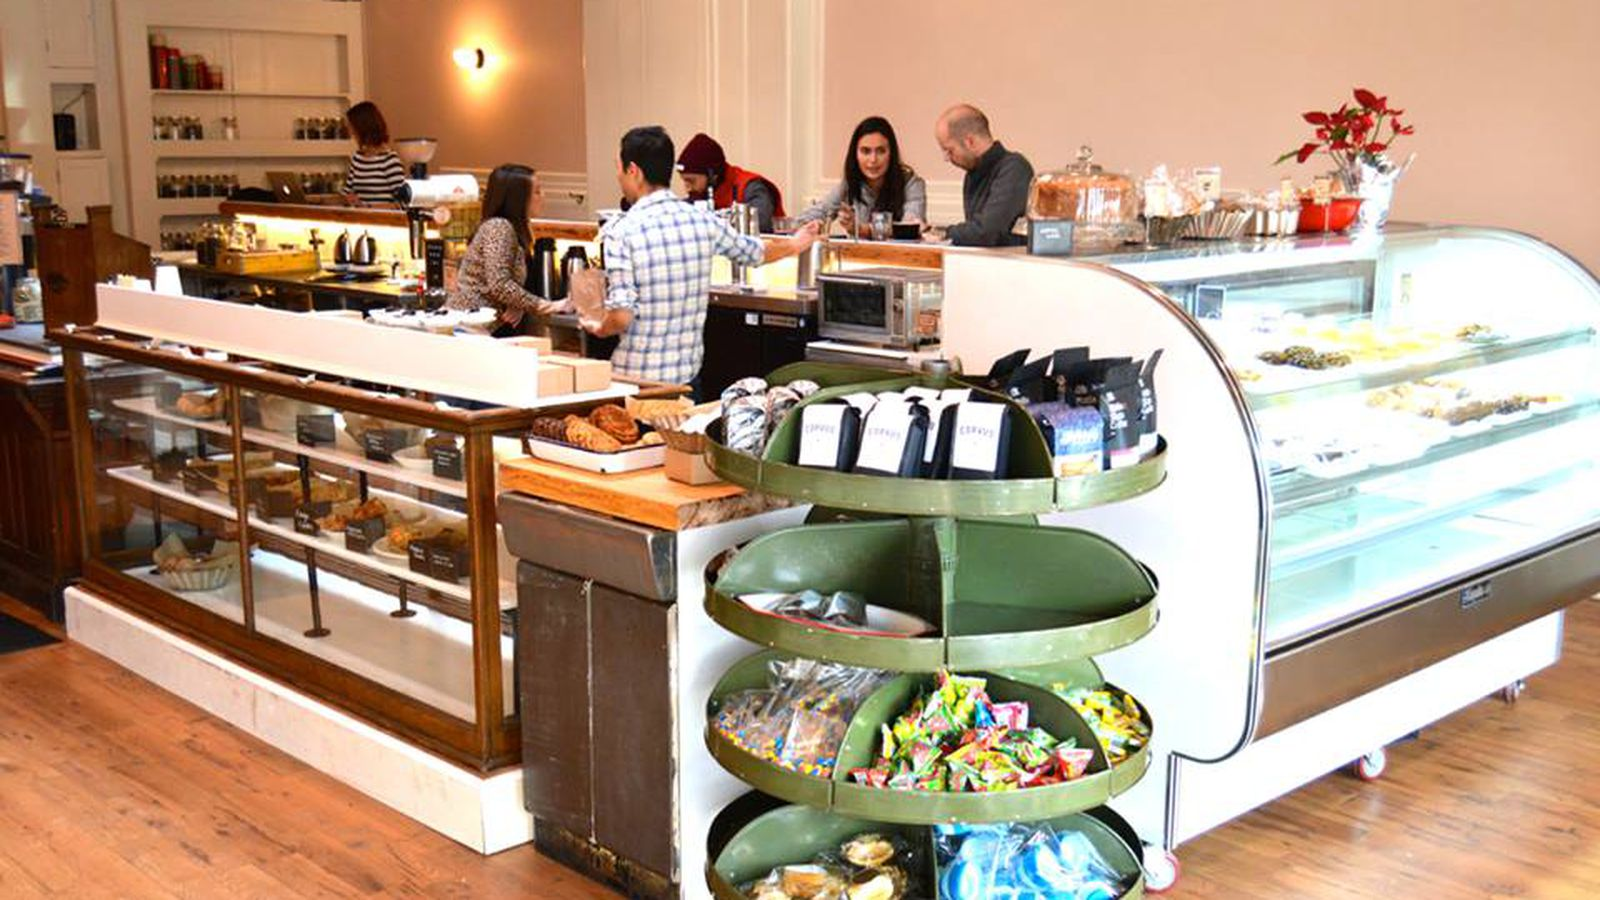 Devils Food Finally Launches Bakery And Coffee Shop